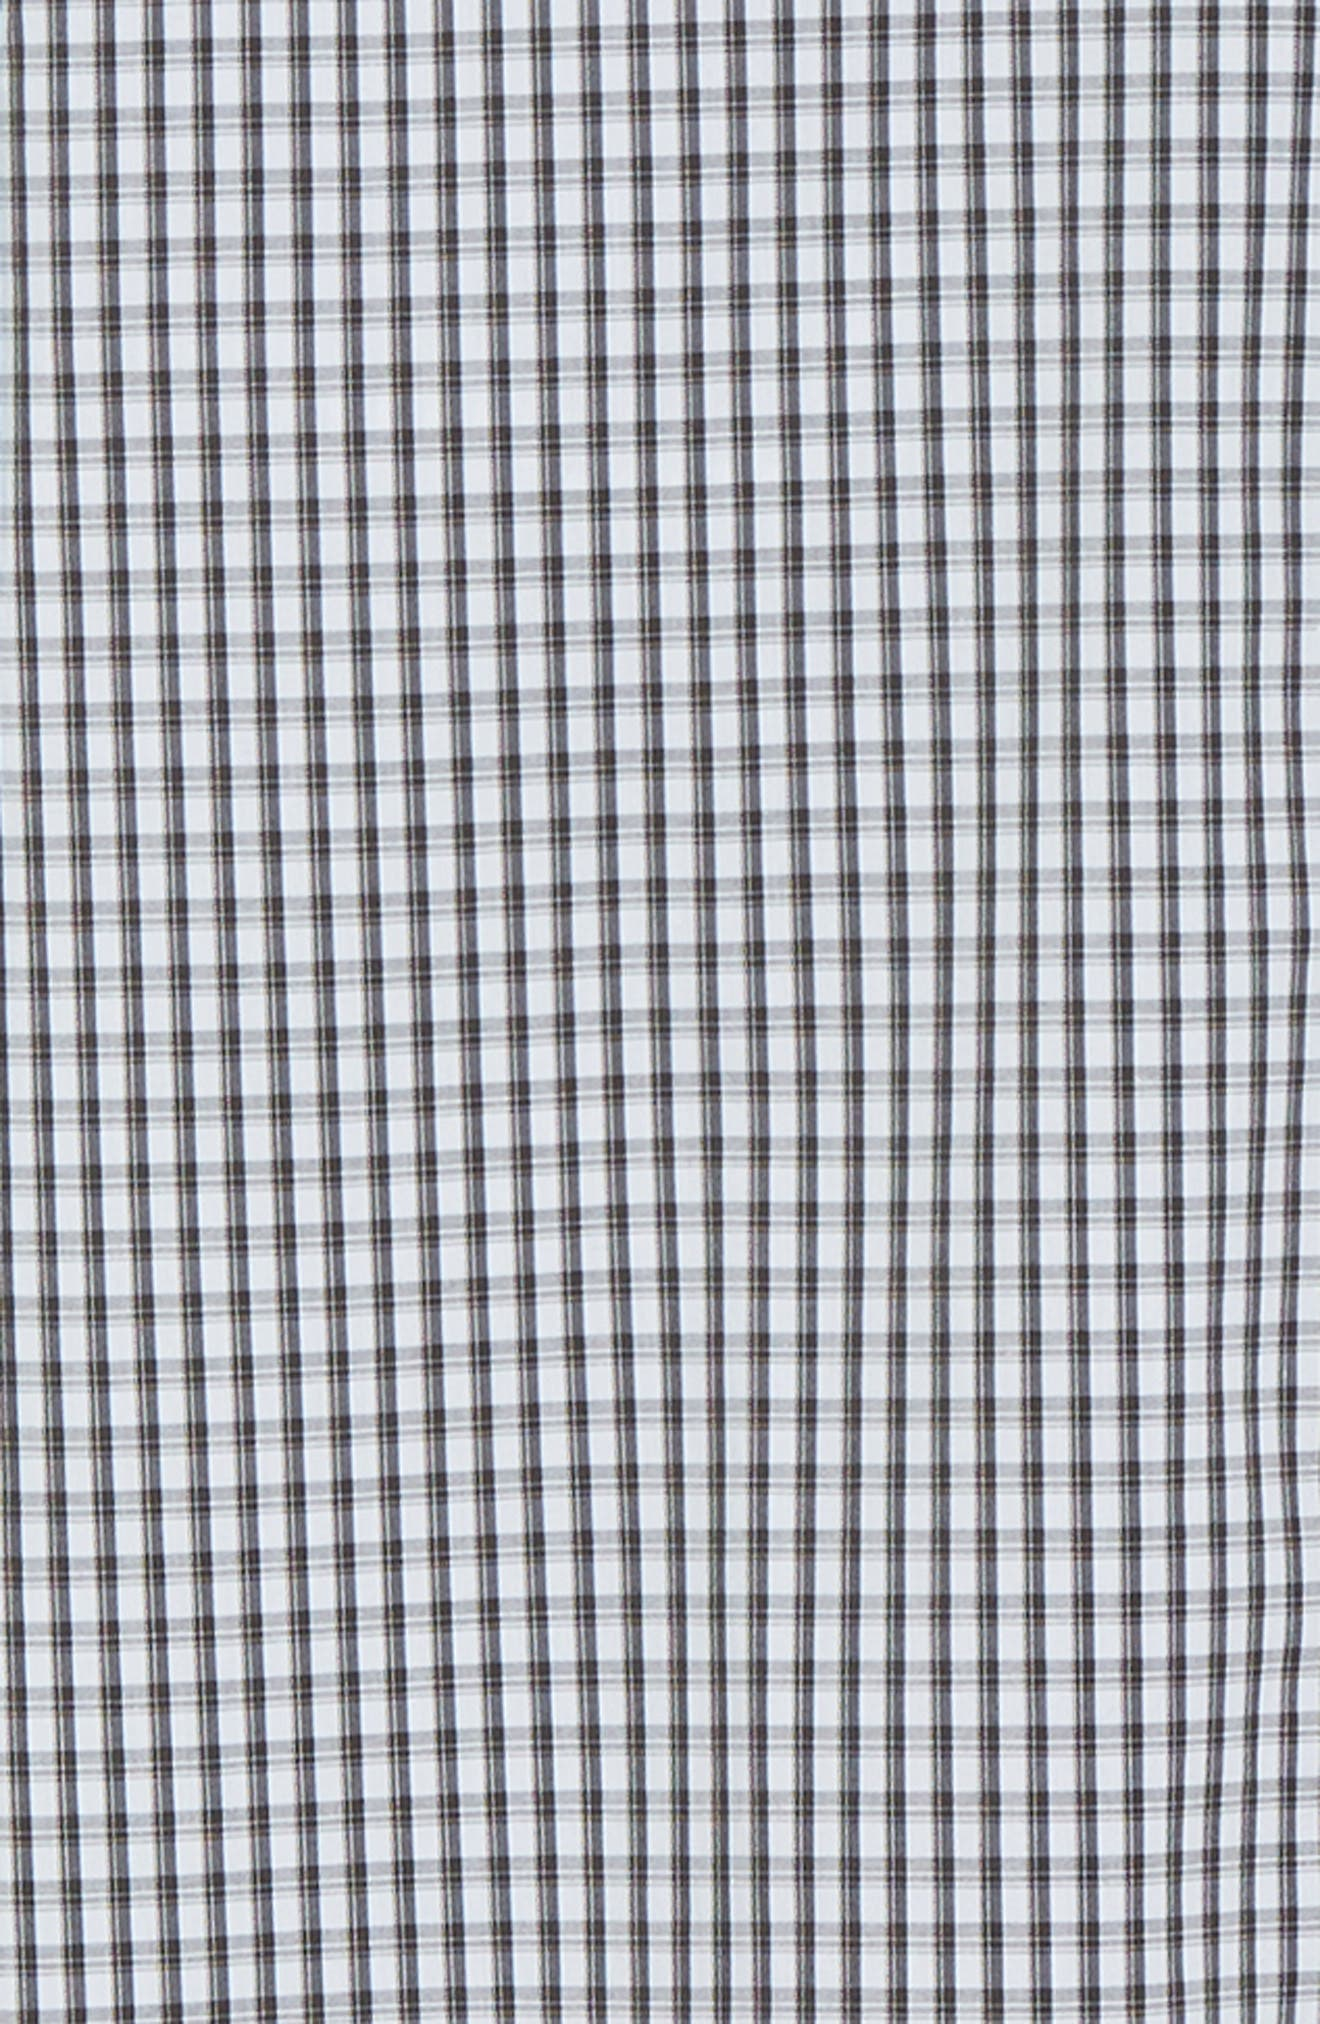 Regular Fit Gingham Non-Iron Sport Shirt,                             Alternate thumbnail 6, color,                             CHARCOAL